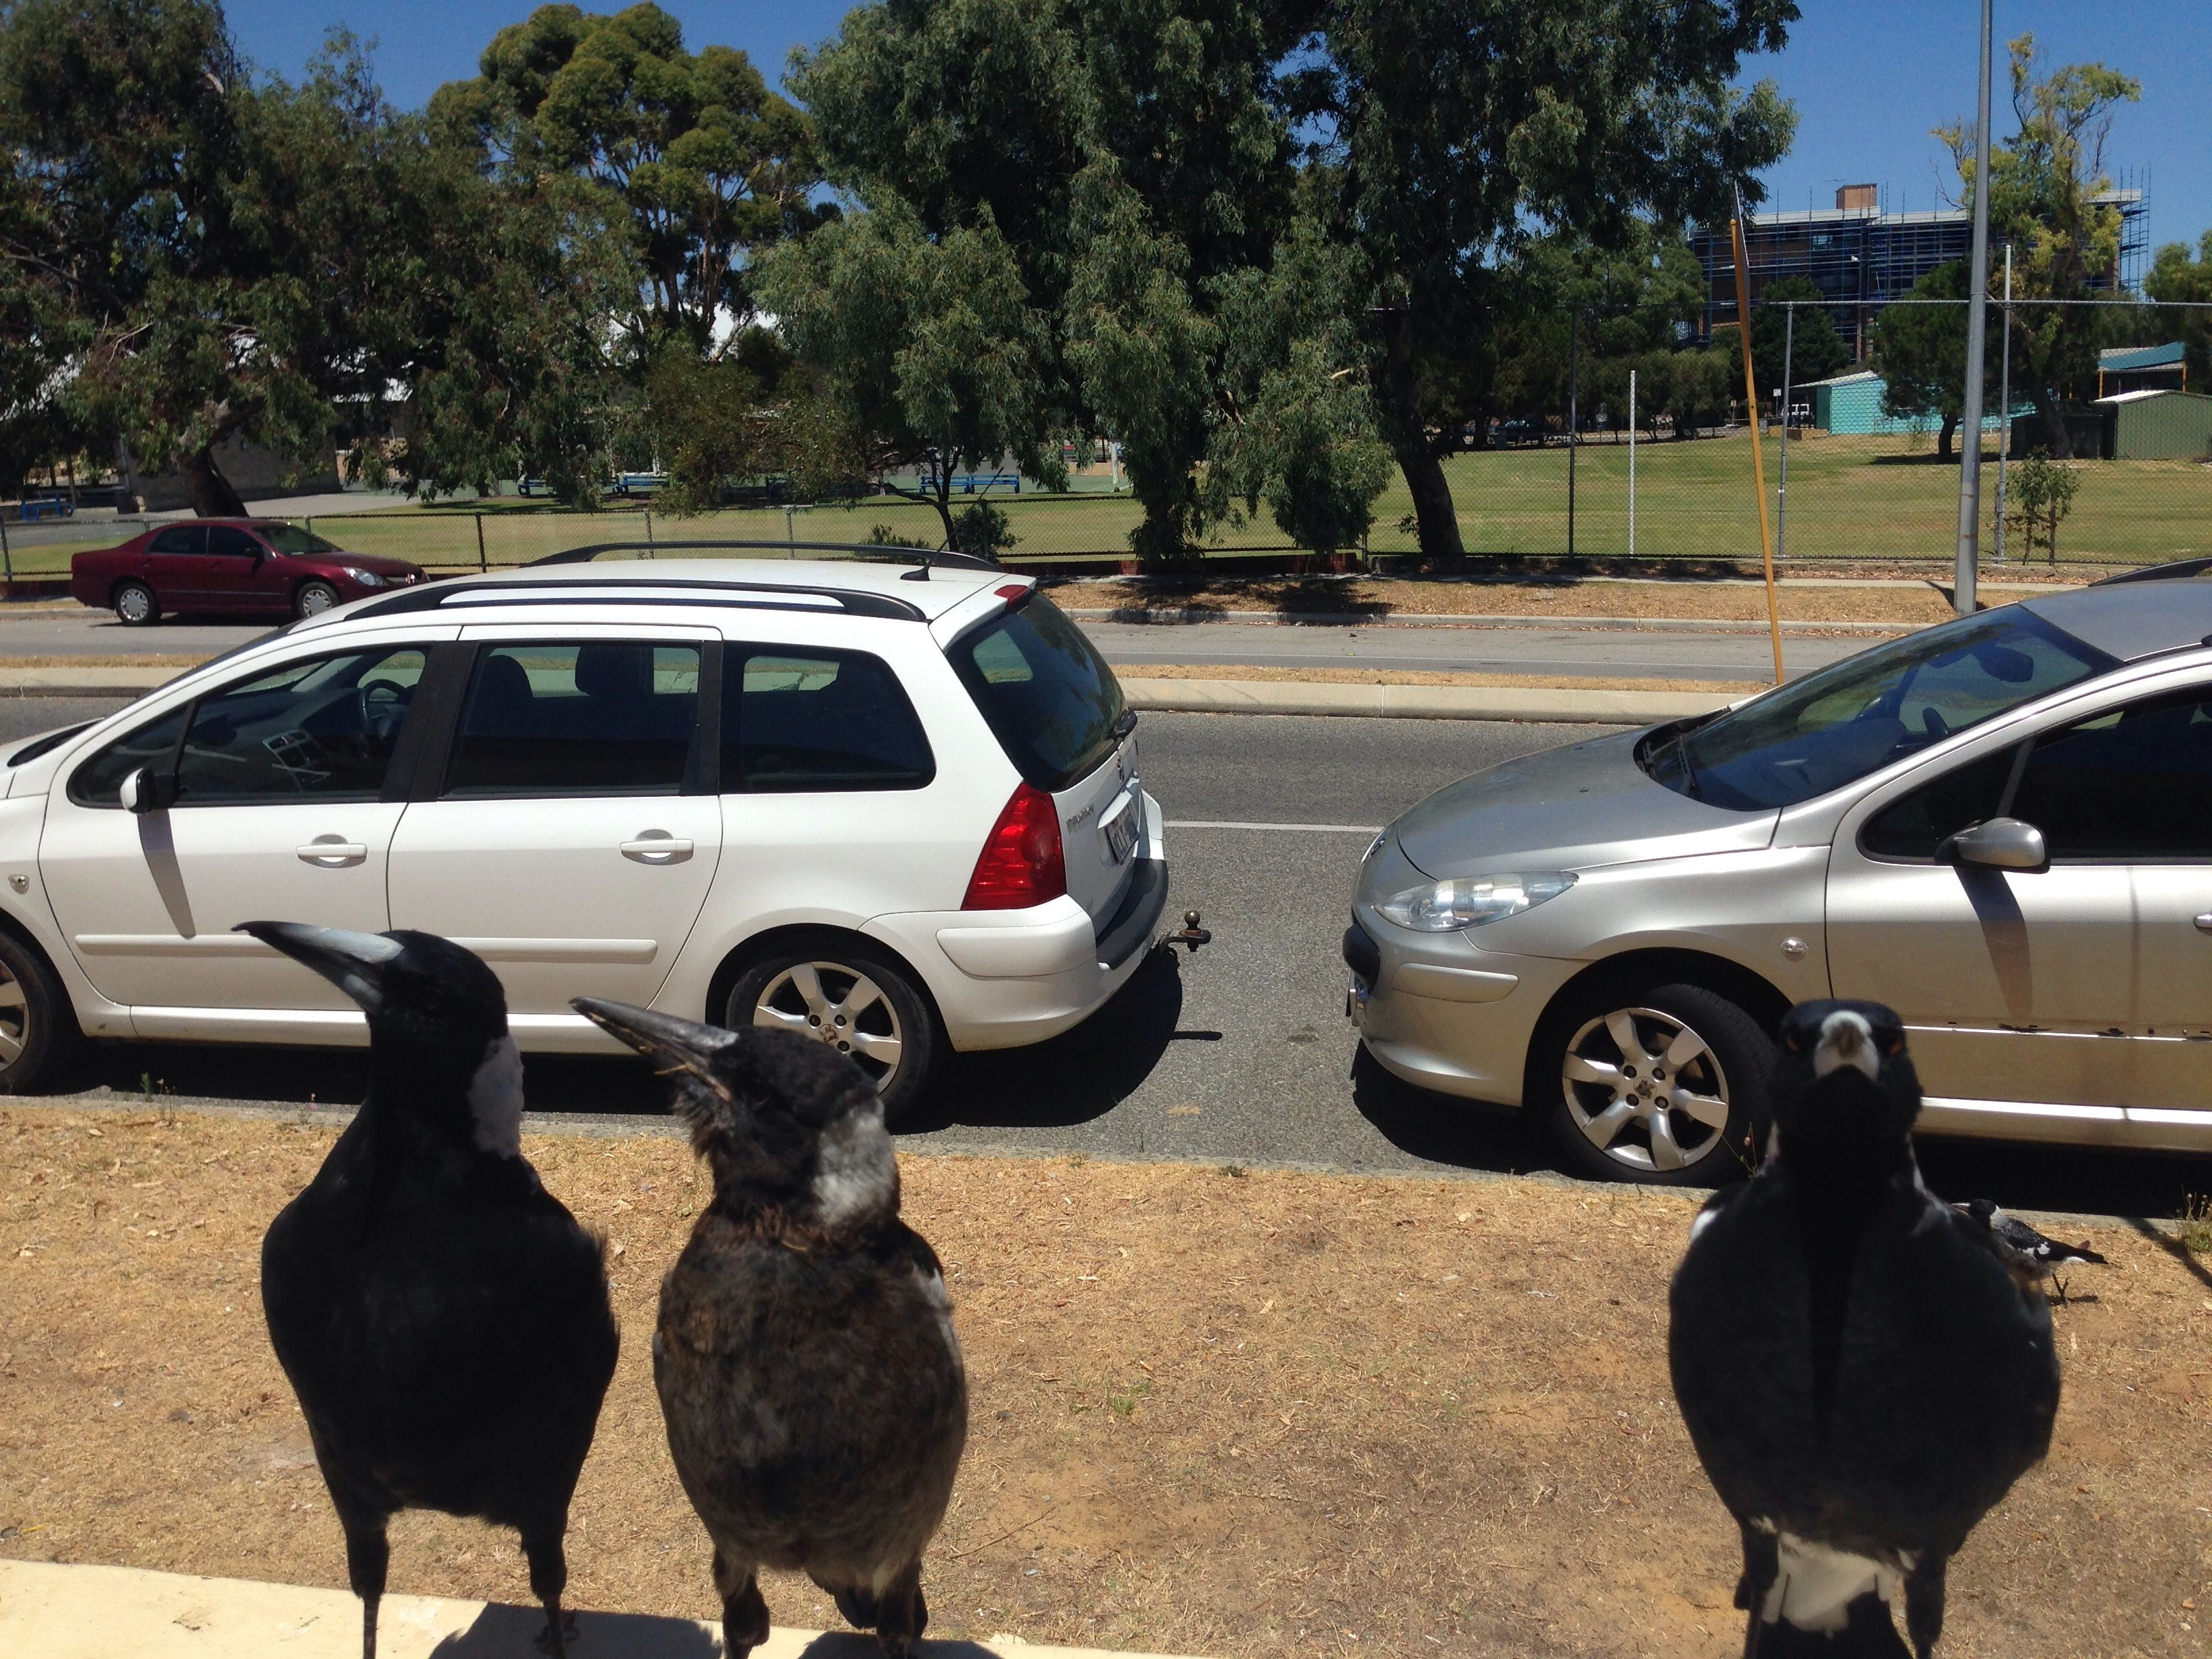 Friendly magpies